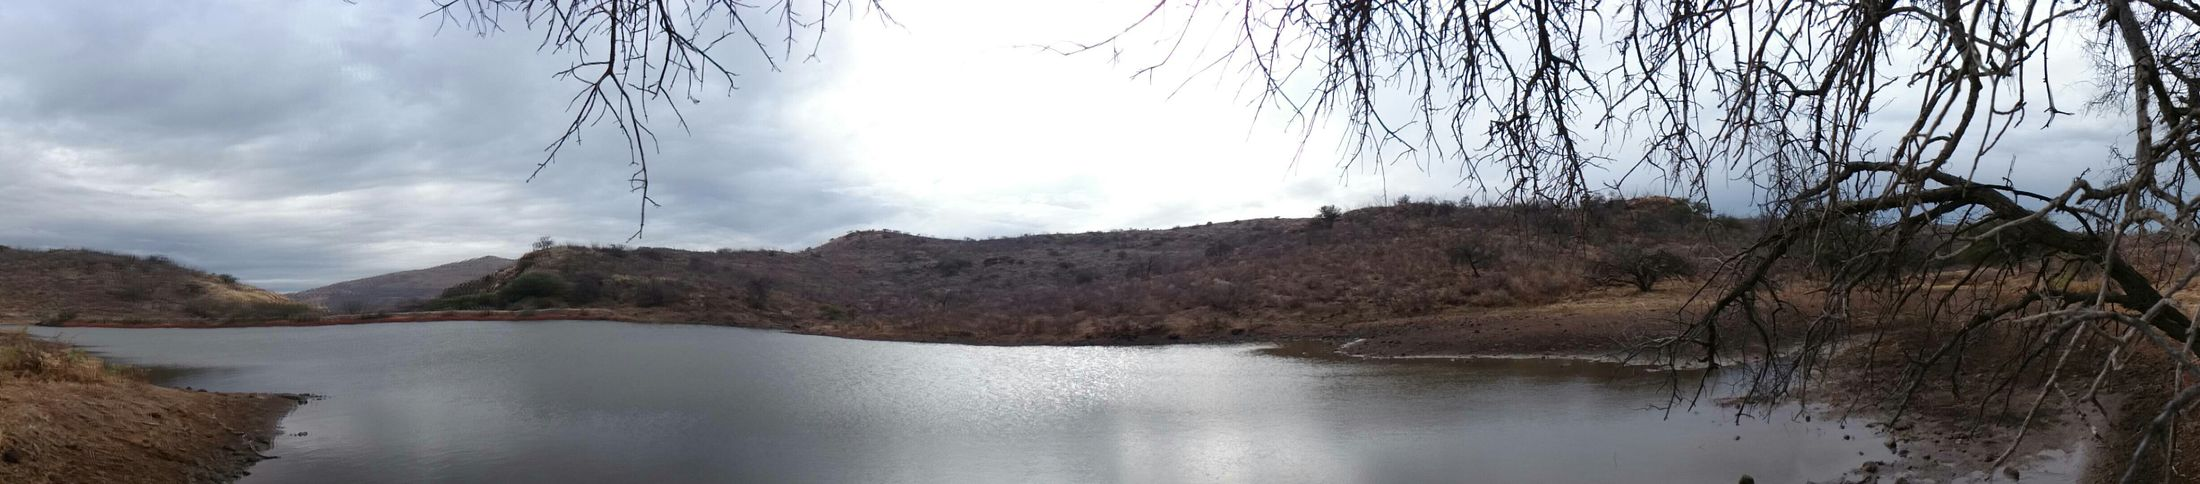 Winter in the sky Today's Shoot Chihuahua Mexico Winter Water Ouside